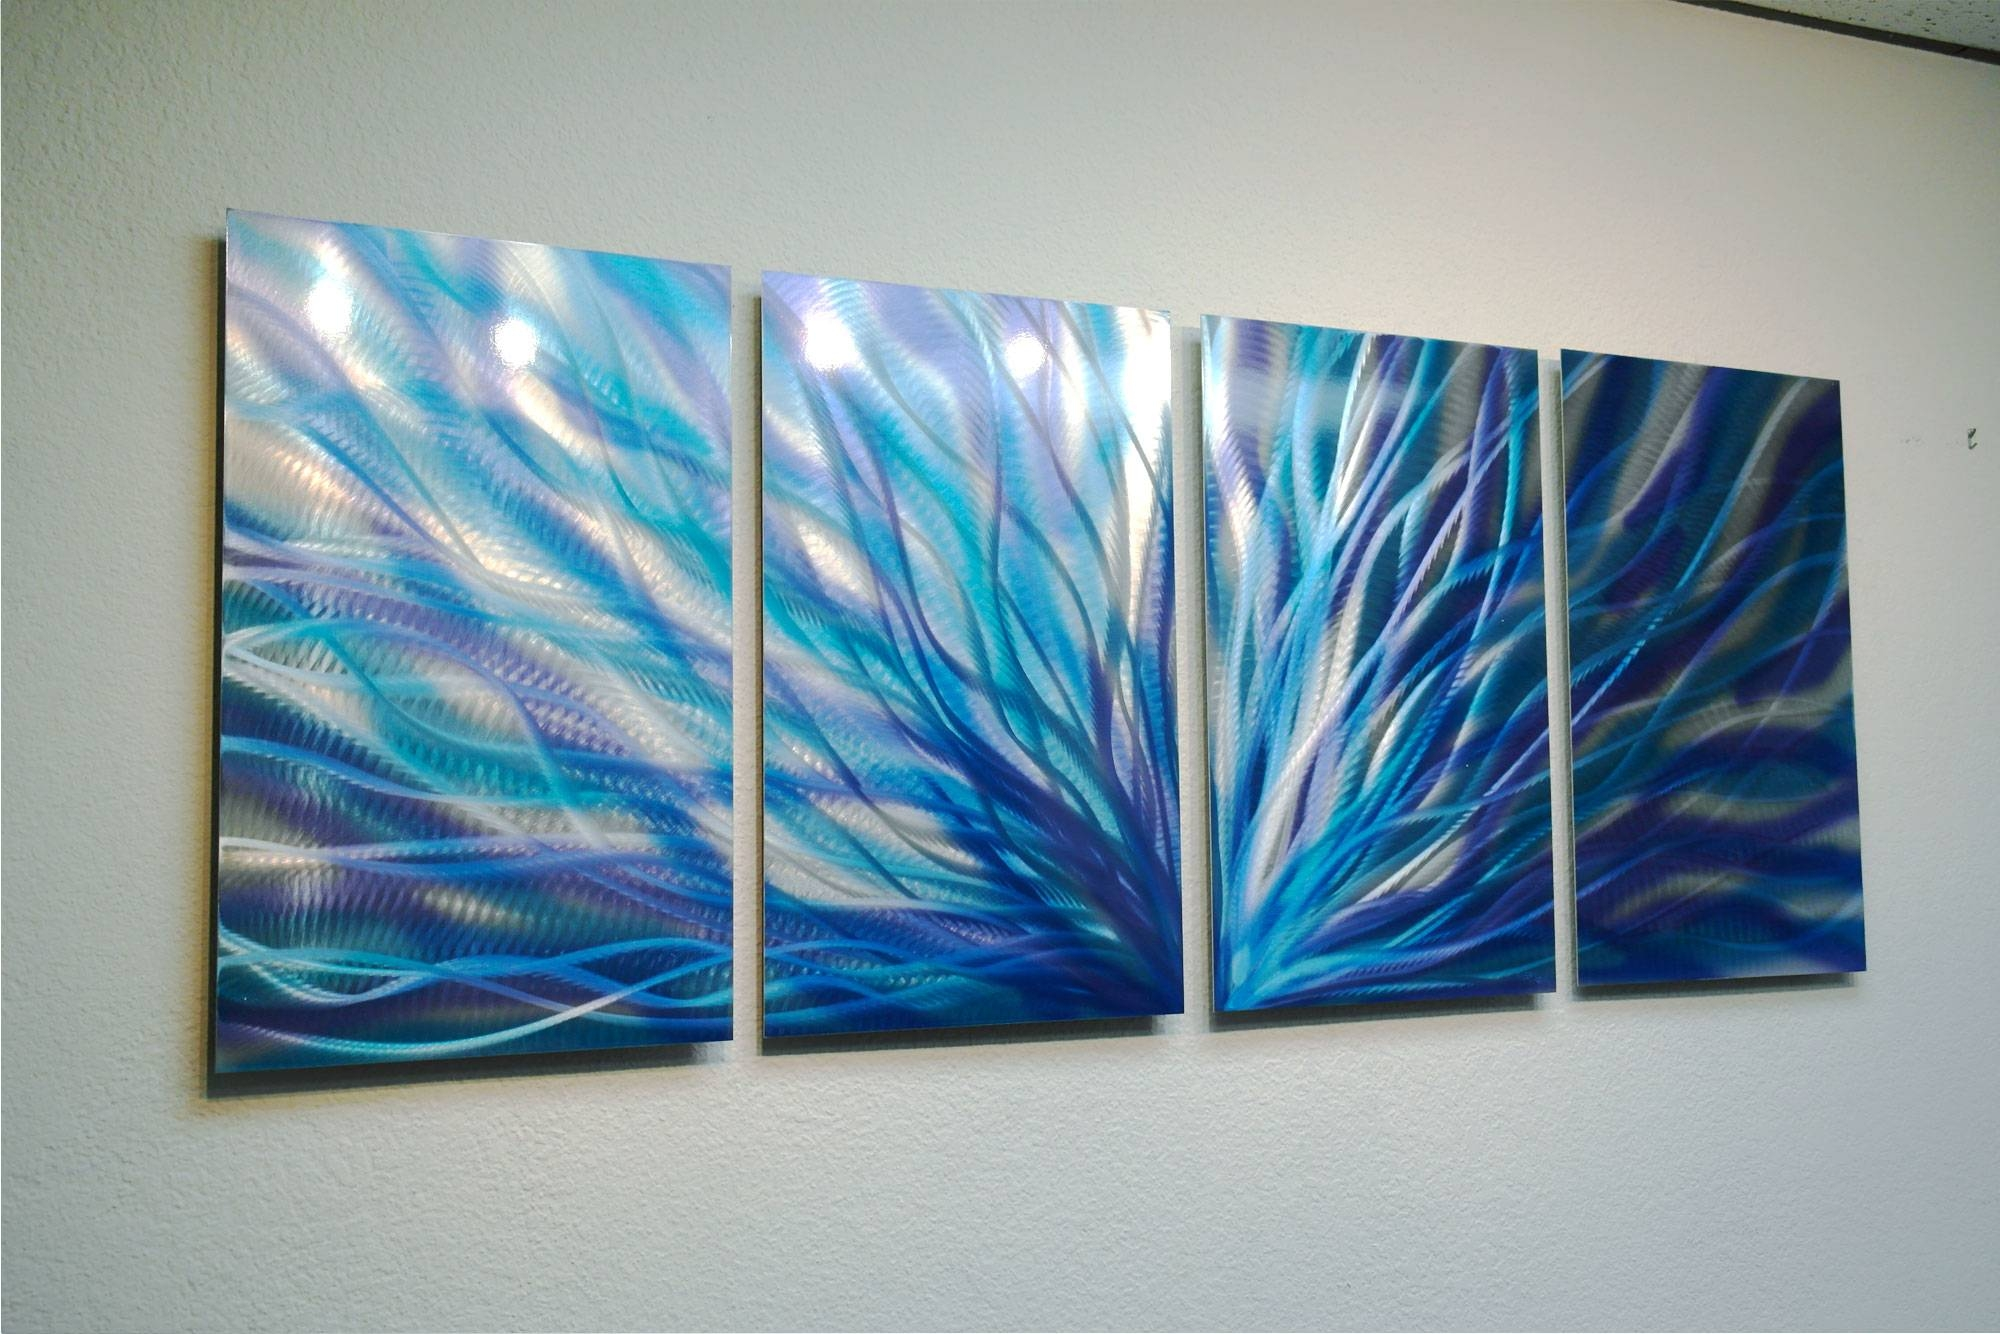 Radiance Twisted Blue – Abstract Metal Wall Art Contemporary For Best And Newest Blue And Green Wall Art (View 15 of 20)